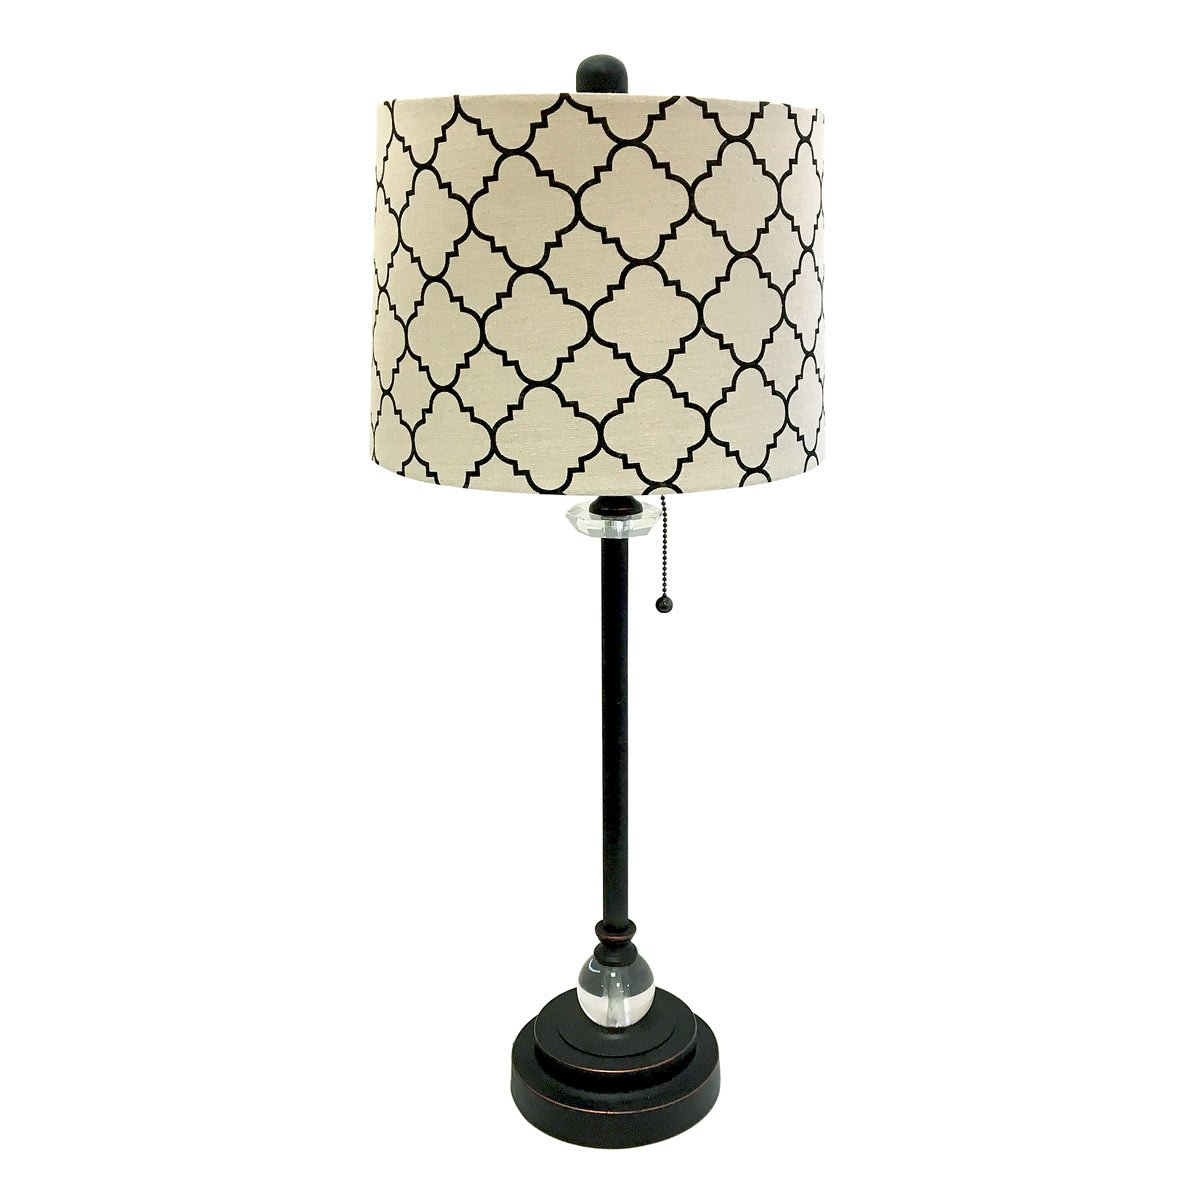 Royal Designs 28'' Crystal and Oil Rub Bronze Lamp with Eggshell and Black Moroccan Print Shallow Drum Hardback Lamp Shade